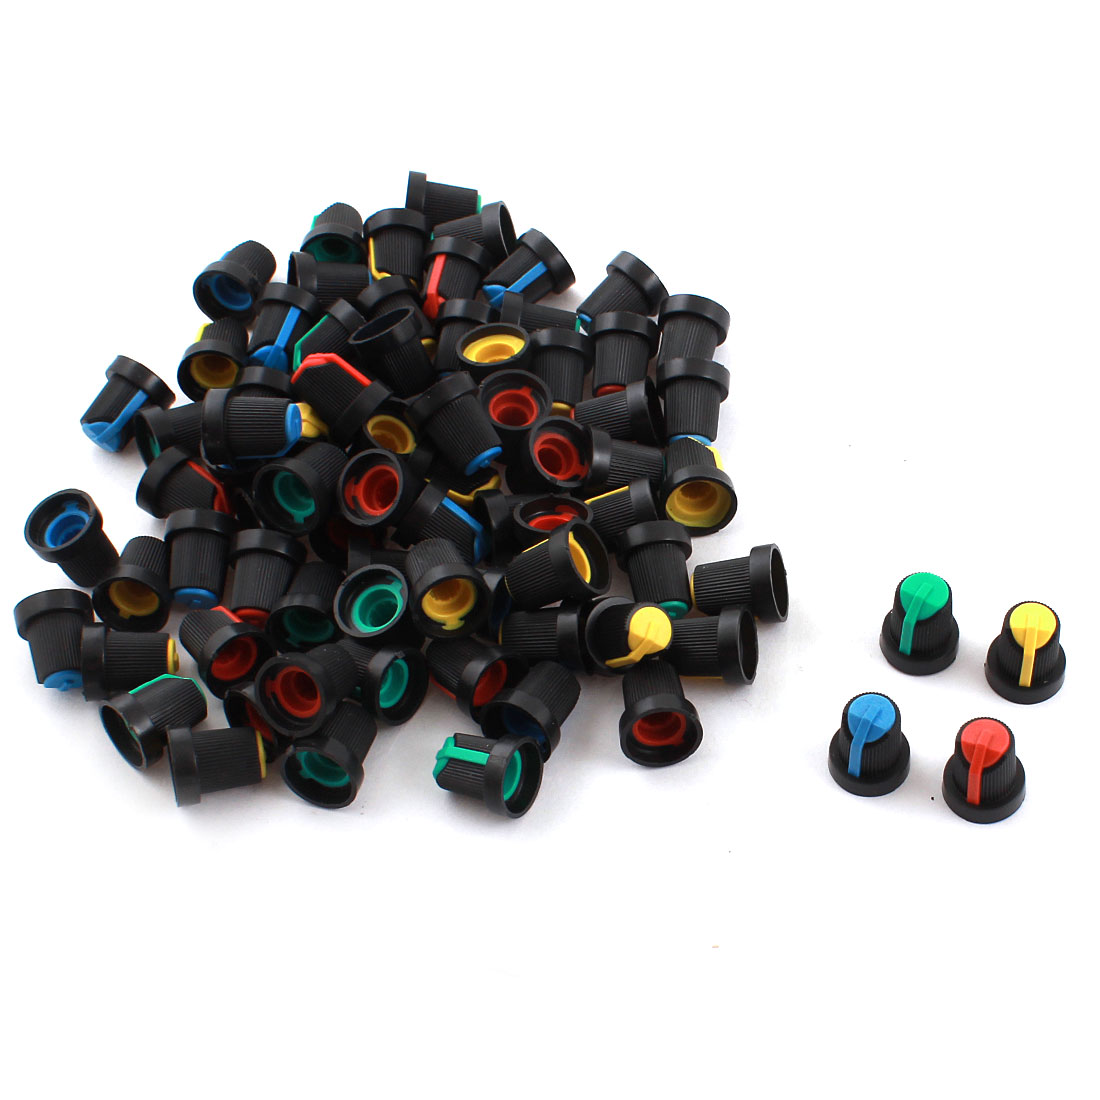 80PCS Black Blue Yellow Green Red Plastic 5.5mm Shaft Hole Diameter Knurled Grip Potentiometer Pot Knob Cap